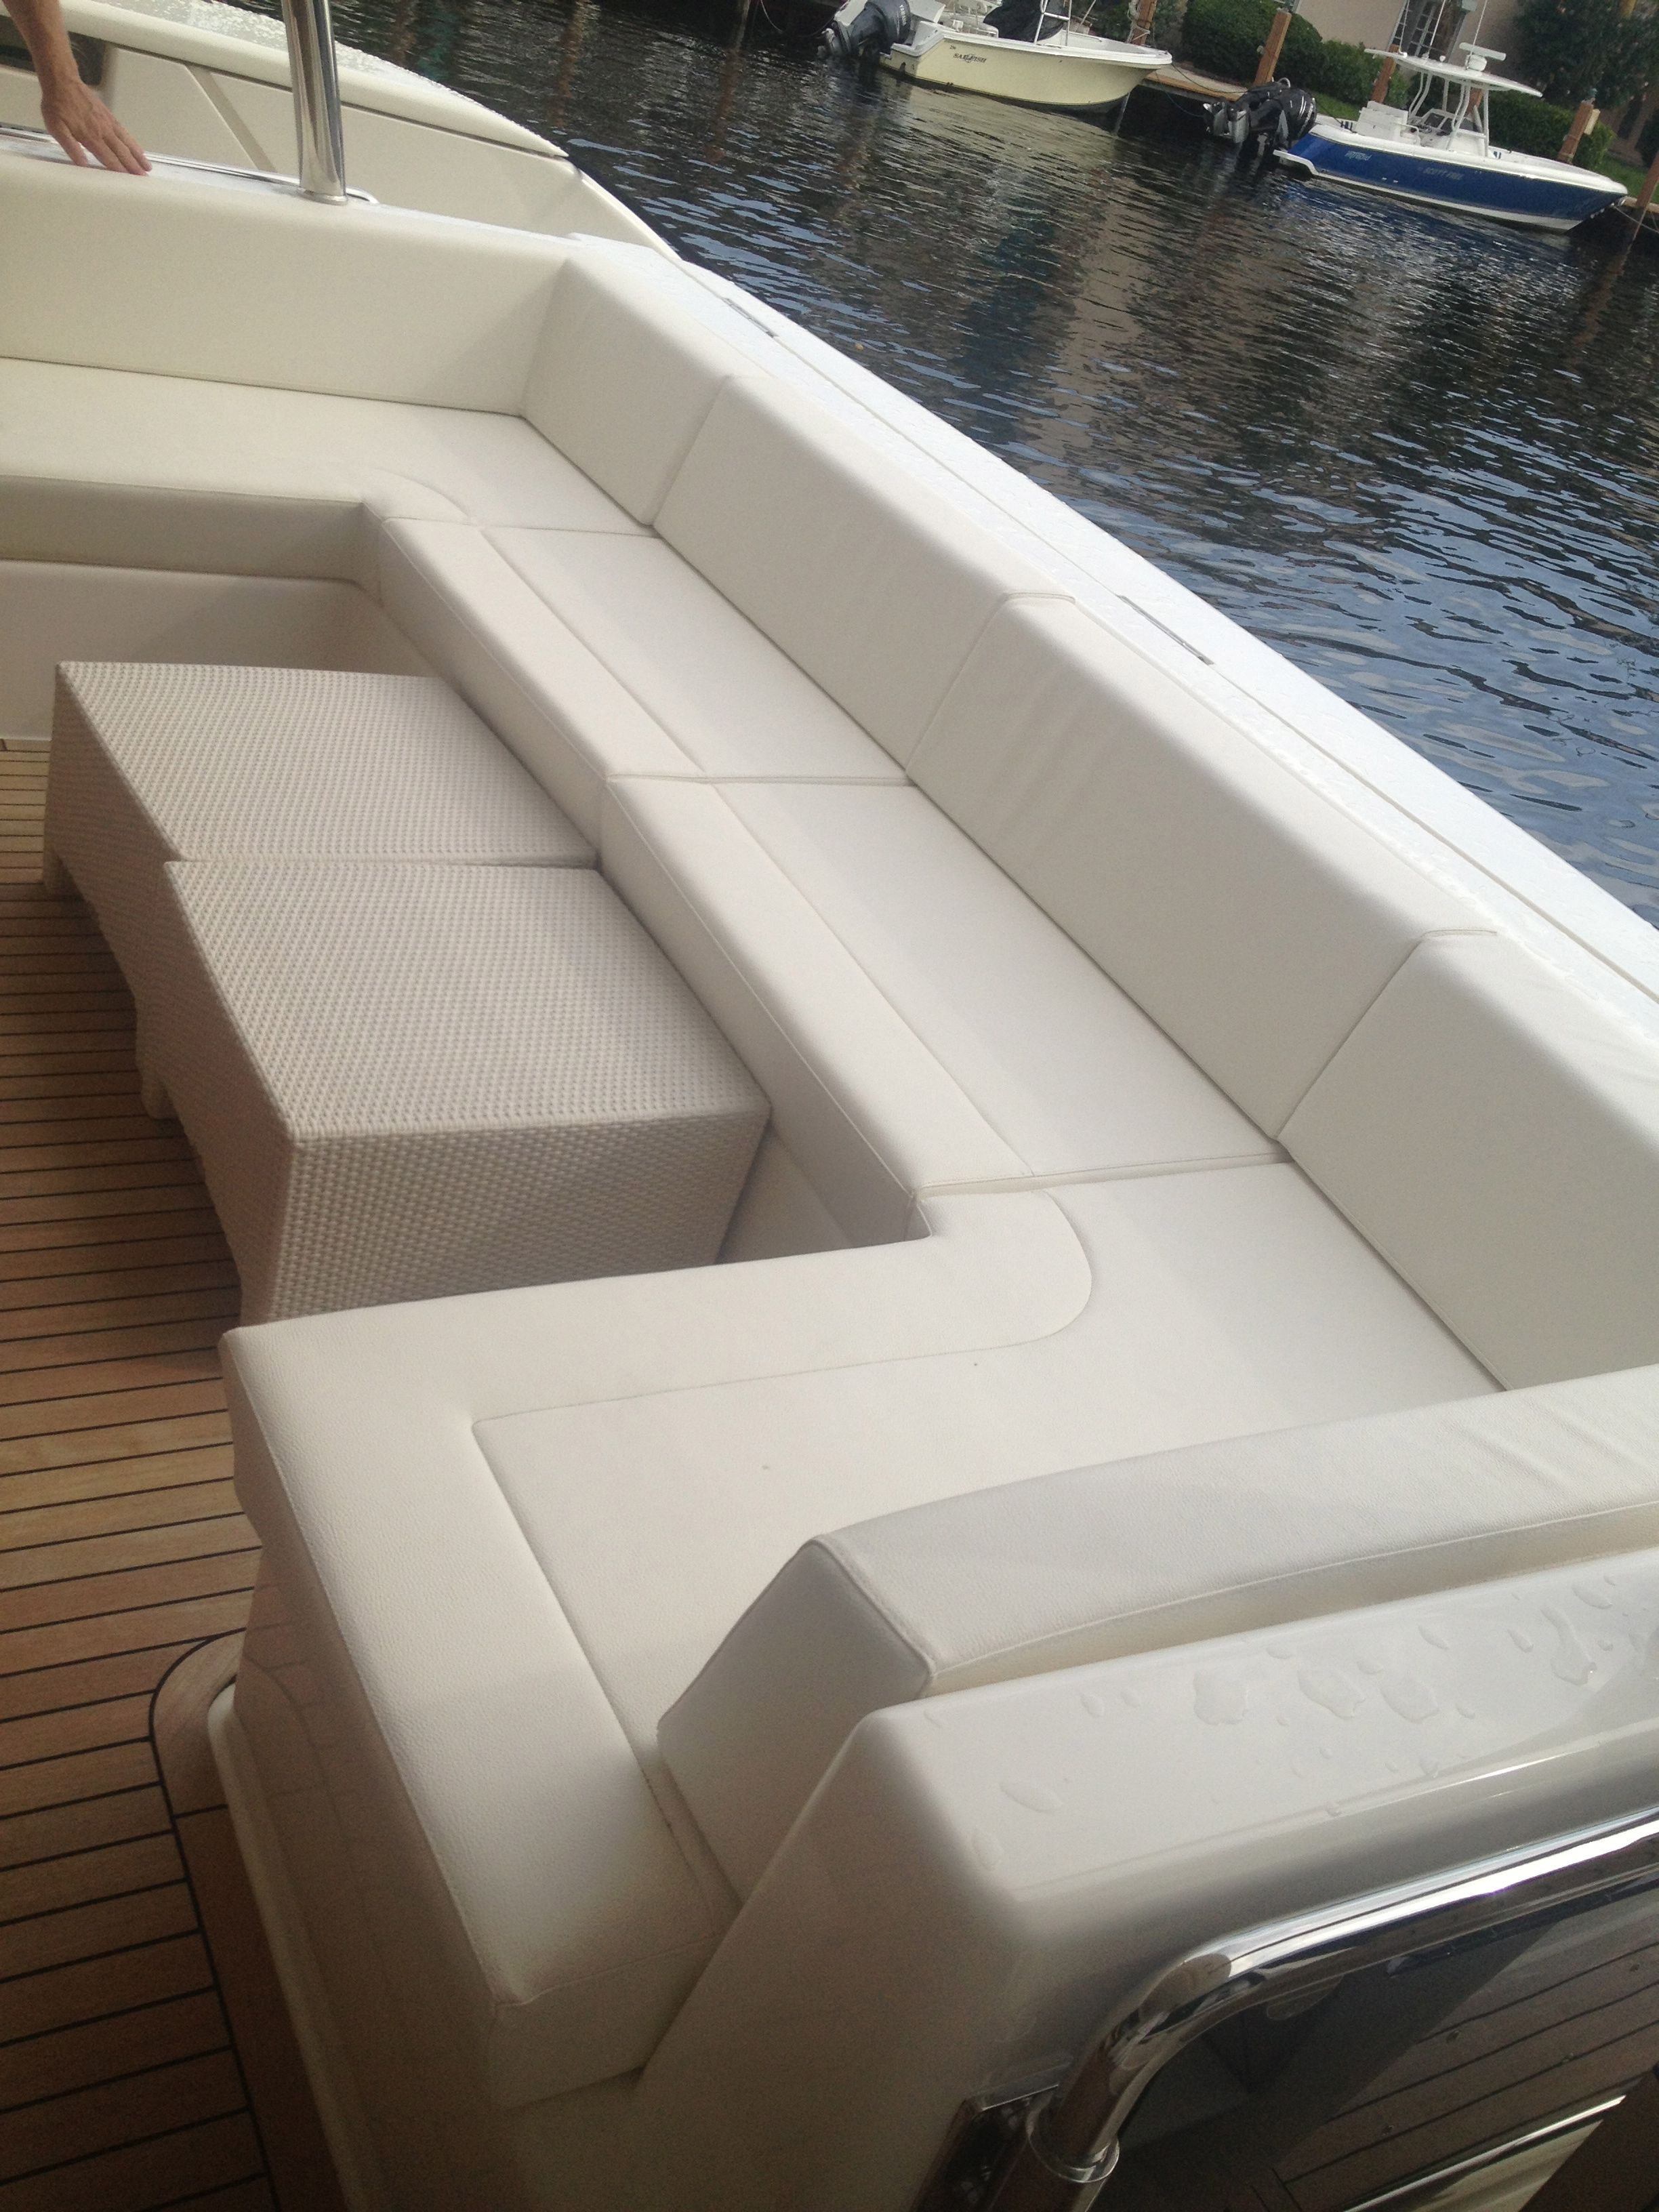 upholstery is the one of the most important finishes on your yacht